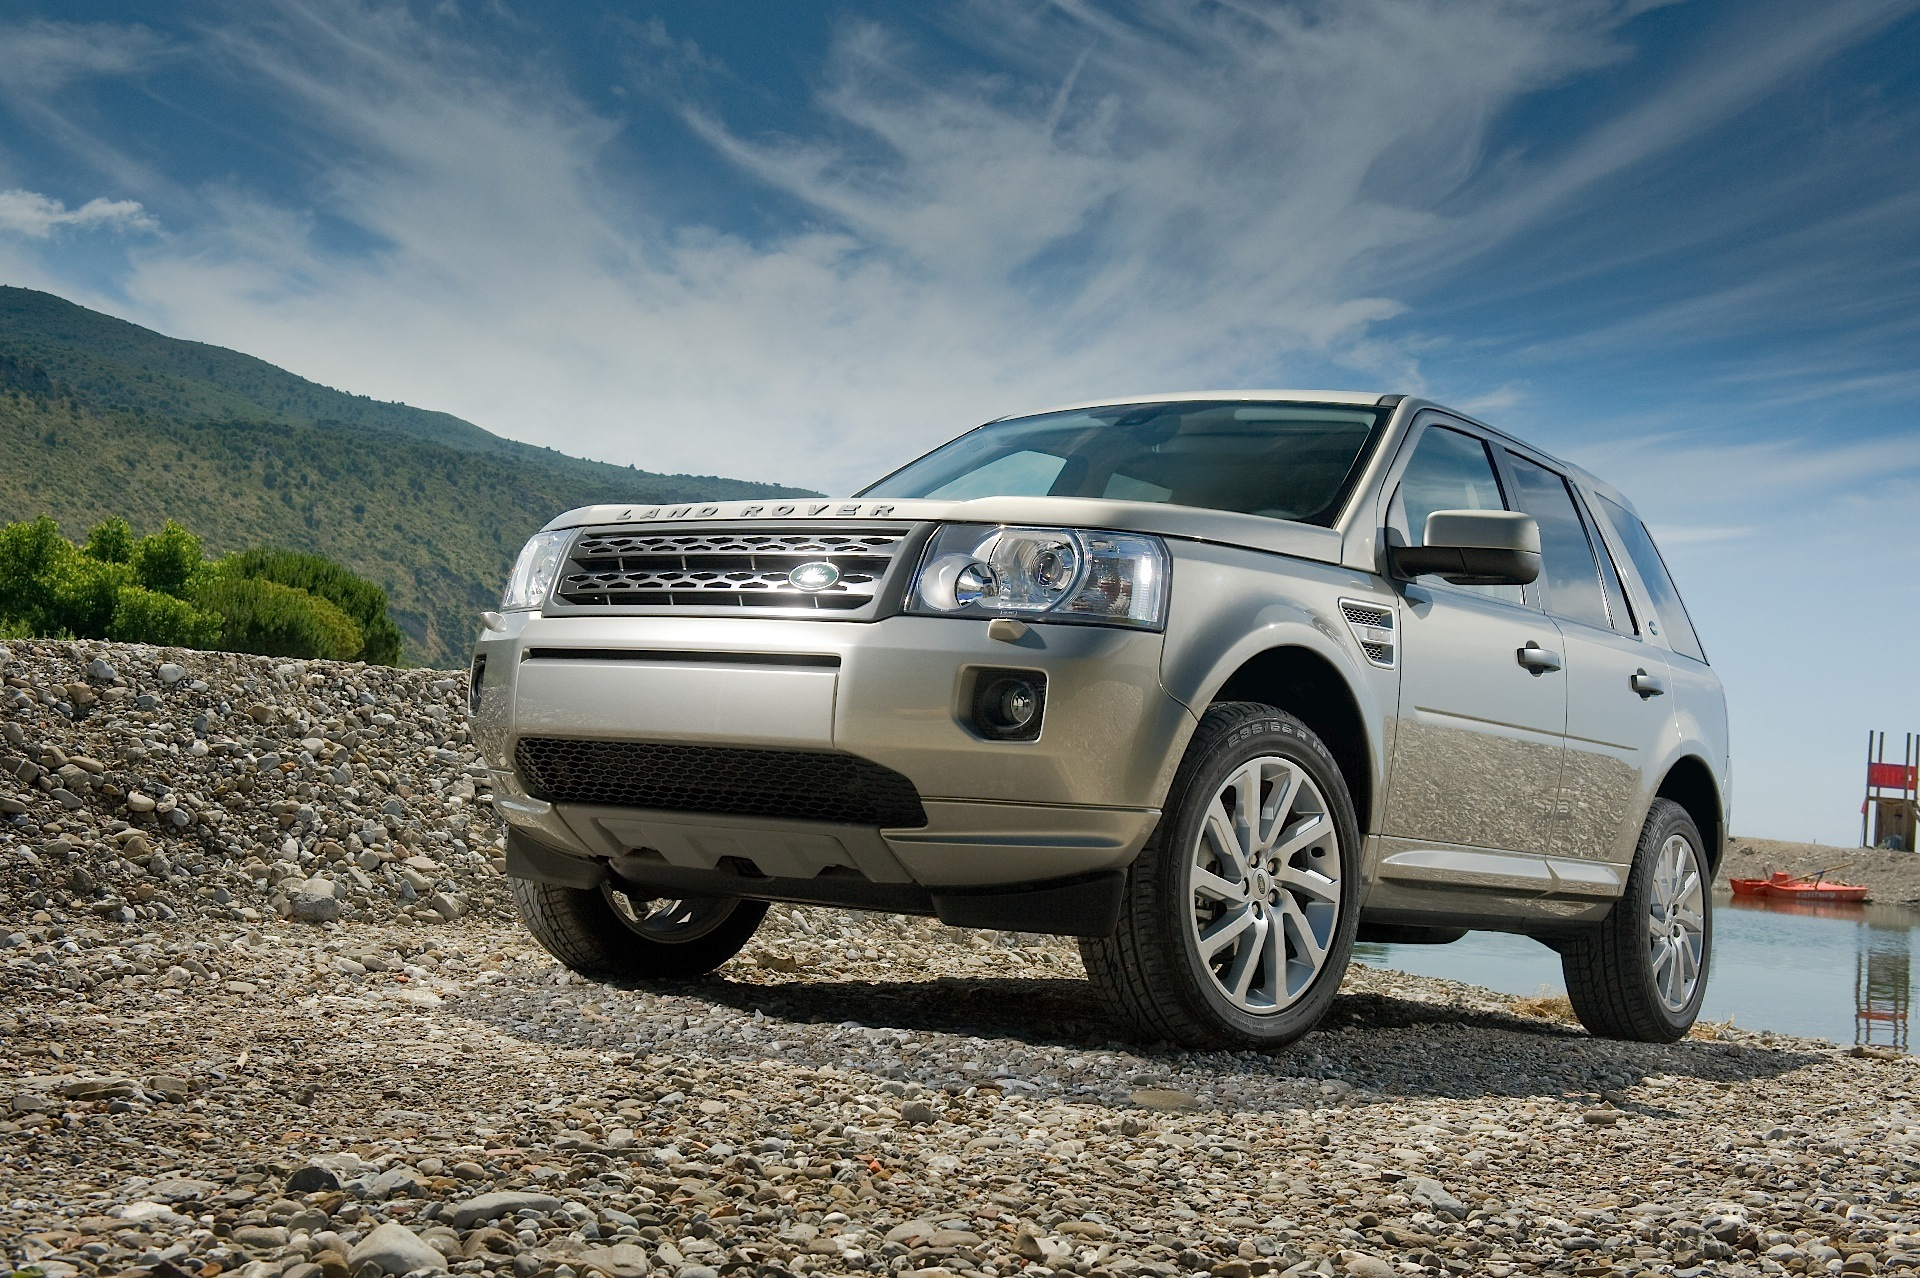 land rover freelander lr2 specs 2009 2010 2011 2012 2013 2014 autoevolution. Black Bedroom Furniture Sets. Home Design Ideas